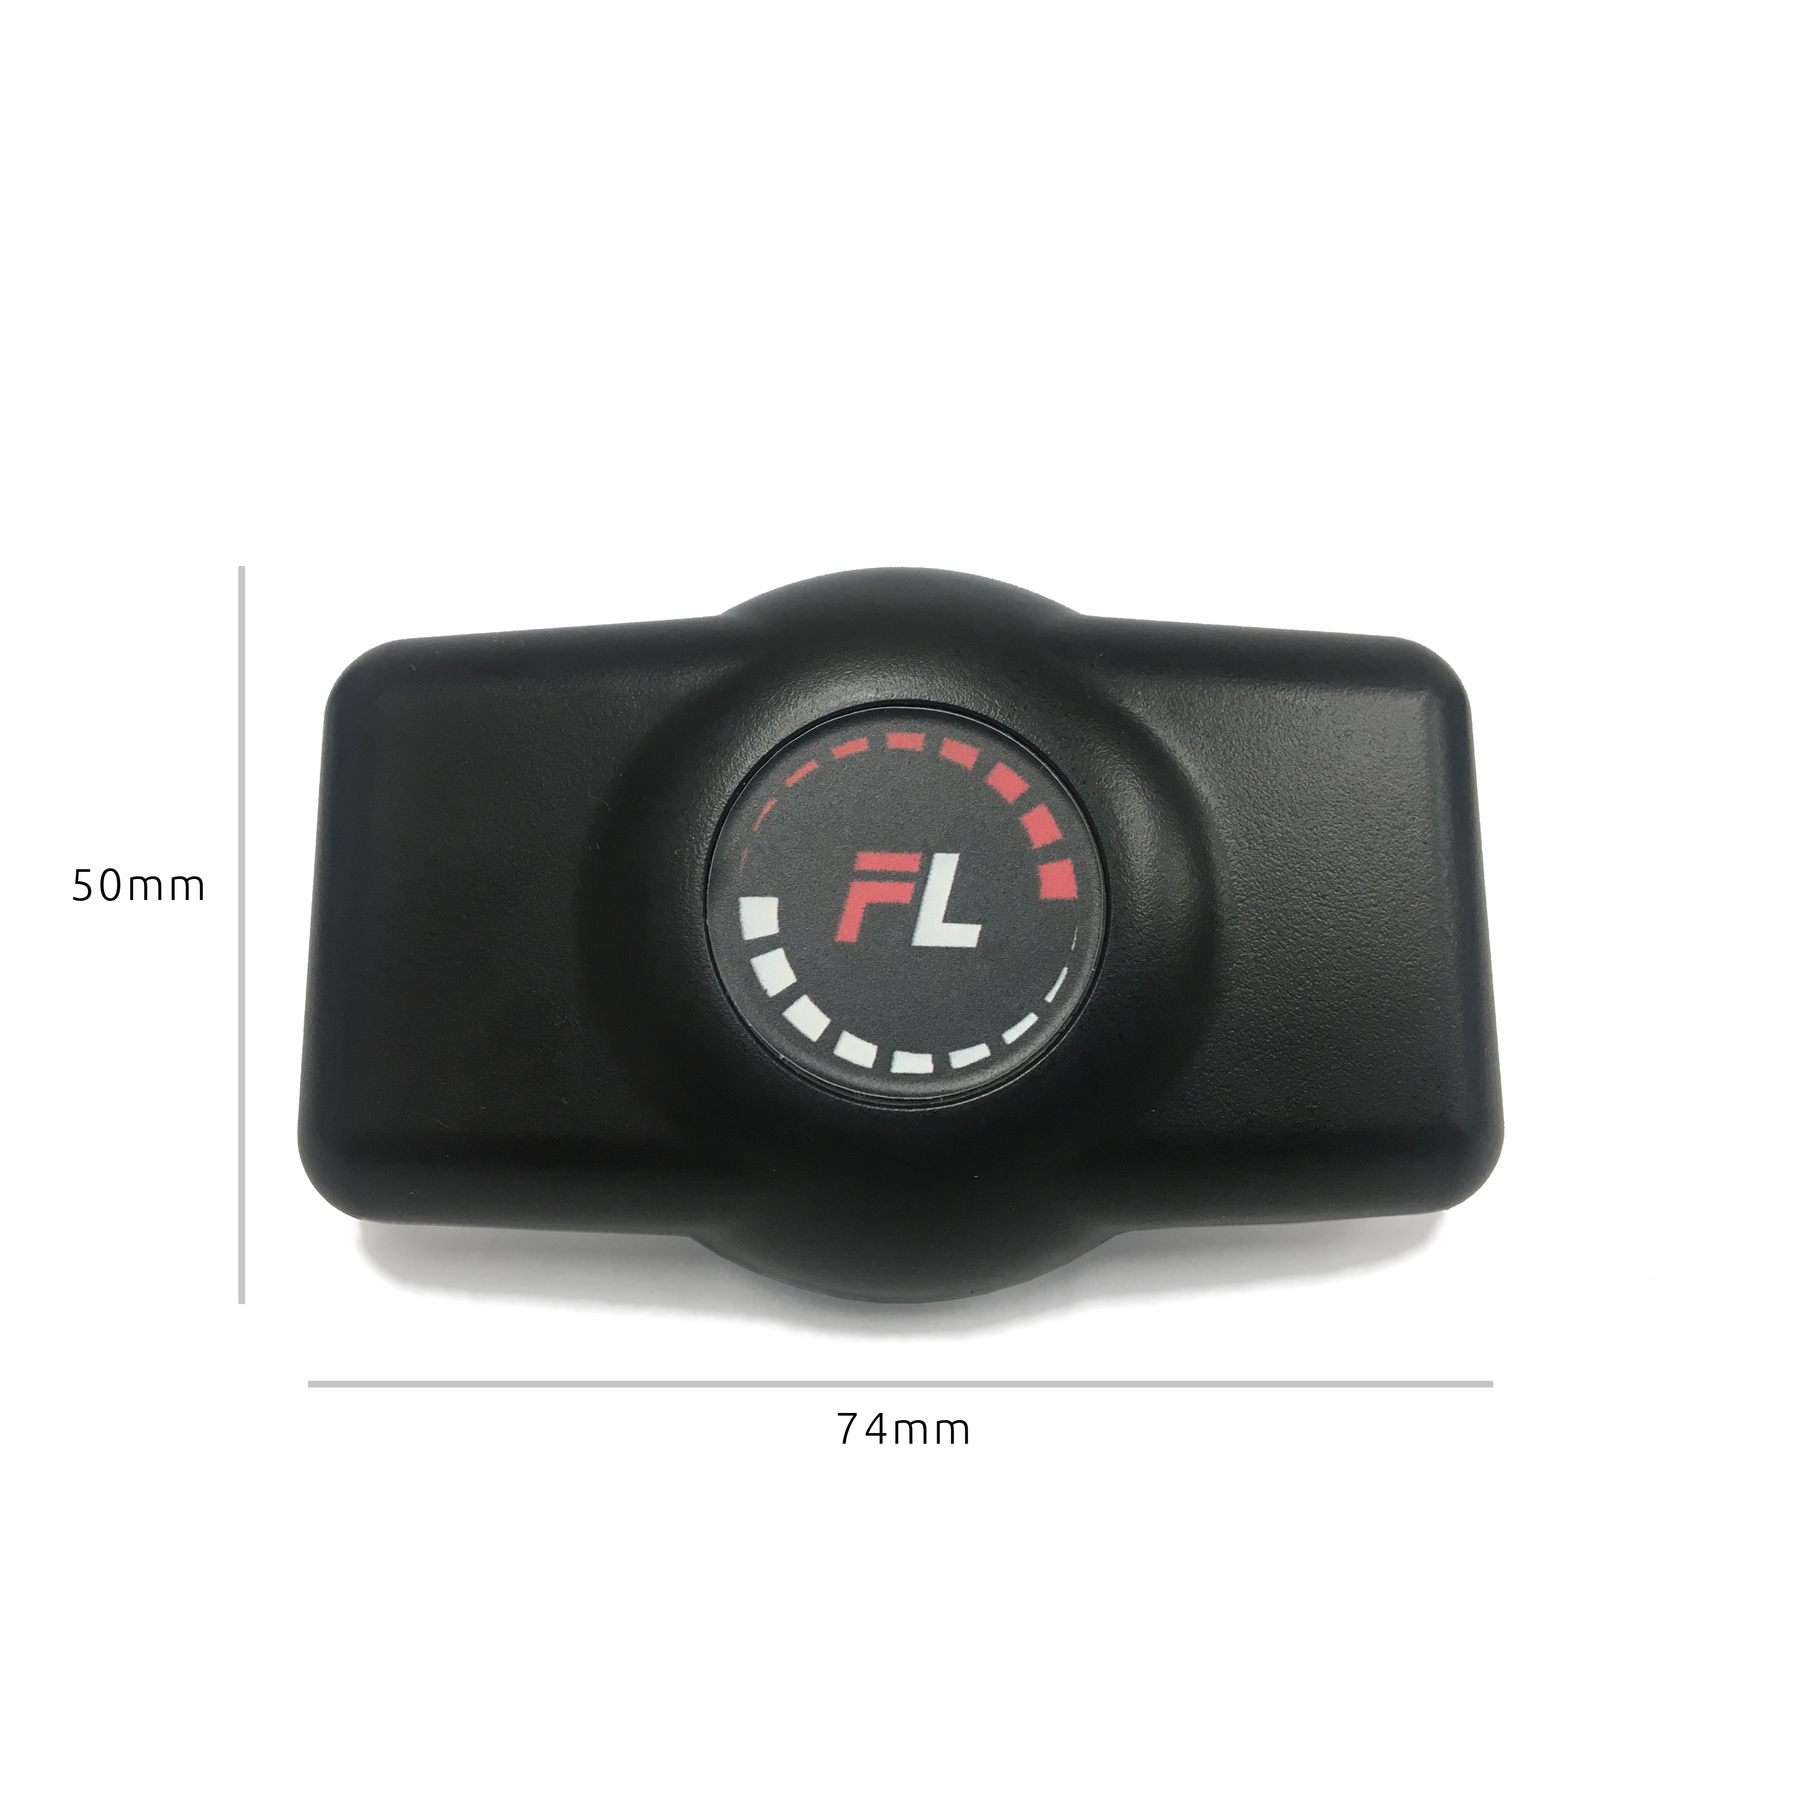 Budget equivalent of Racelogic, Dragy - Freelogic, 10 Hz GPS, USB connection with smartphone, tablet, PC, laptop image